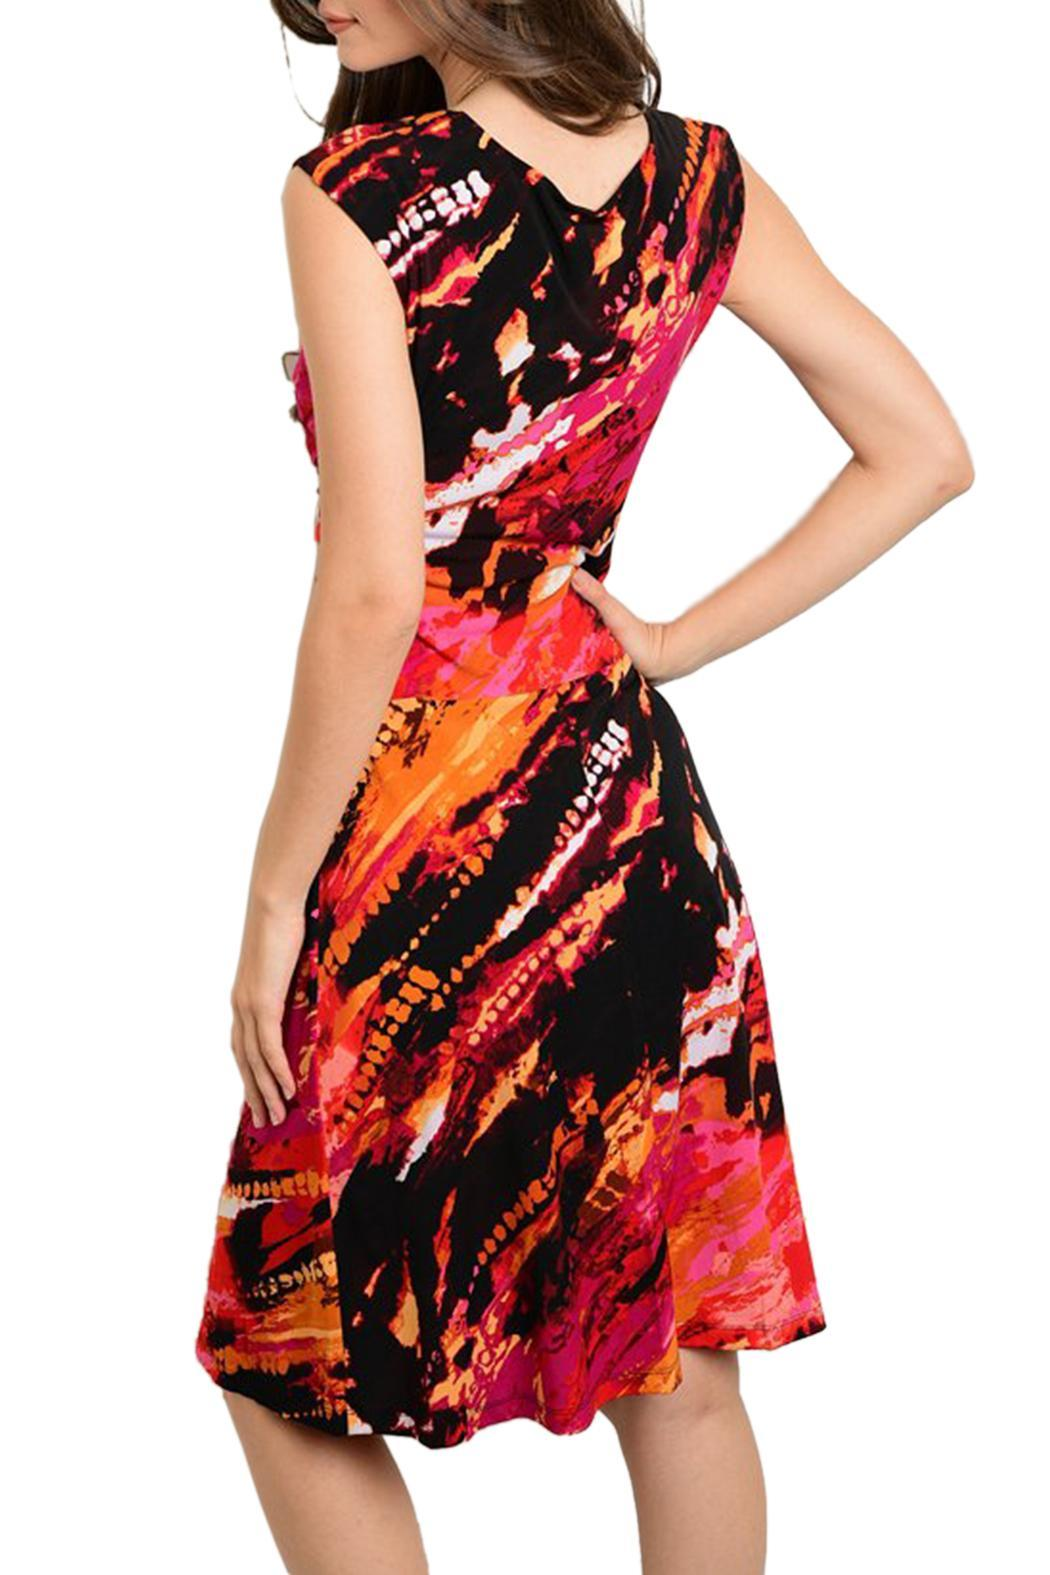 Find great deals on eBay for magenta dress. Shop with confidence.